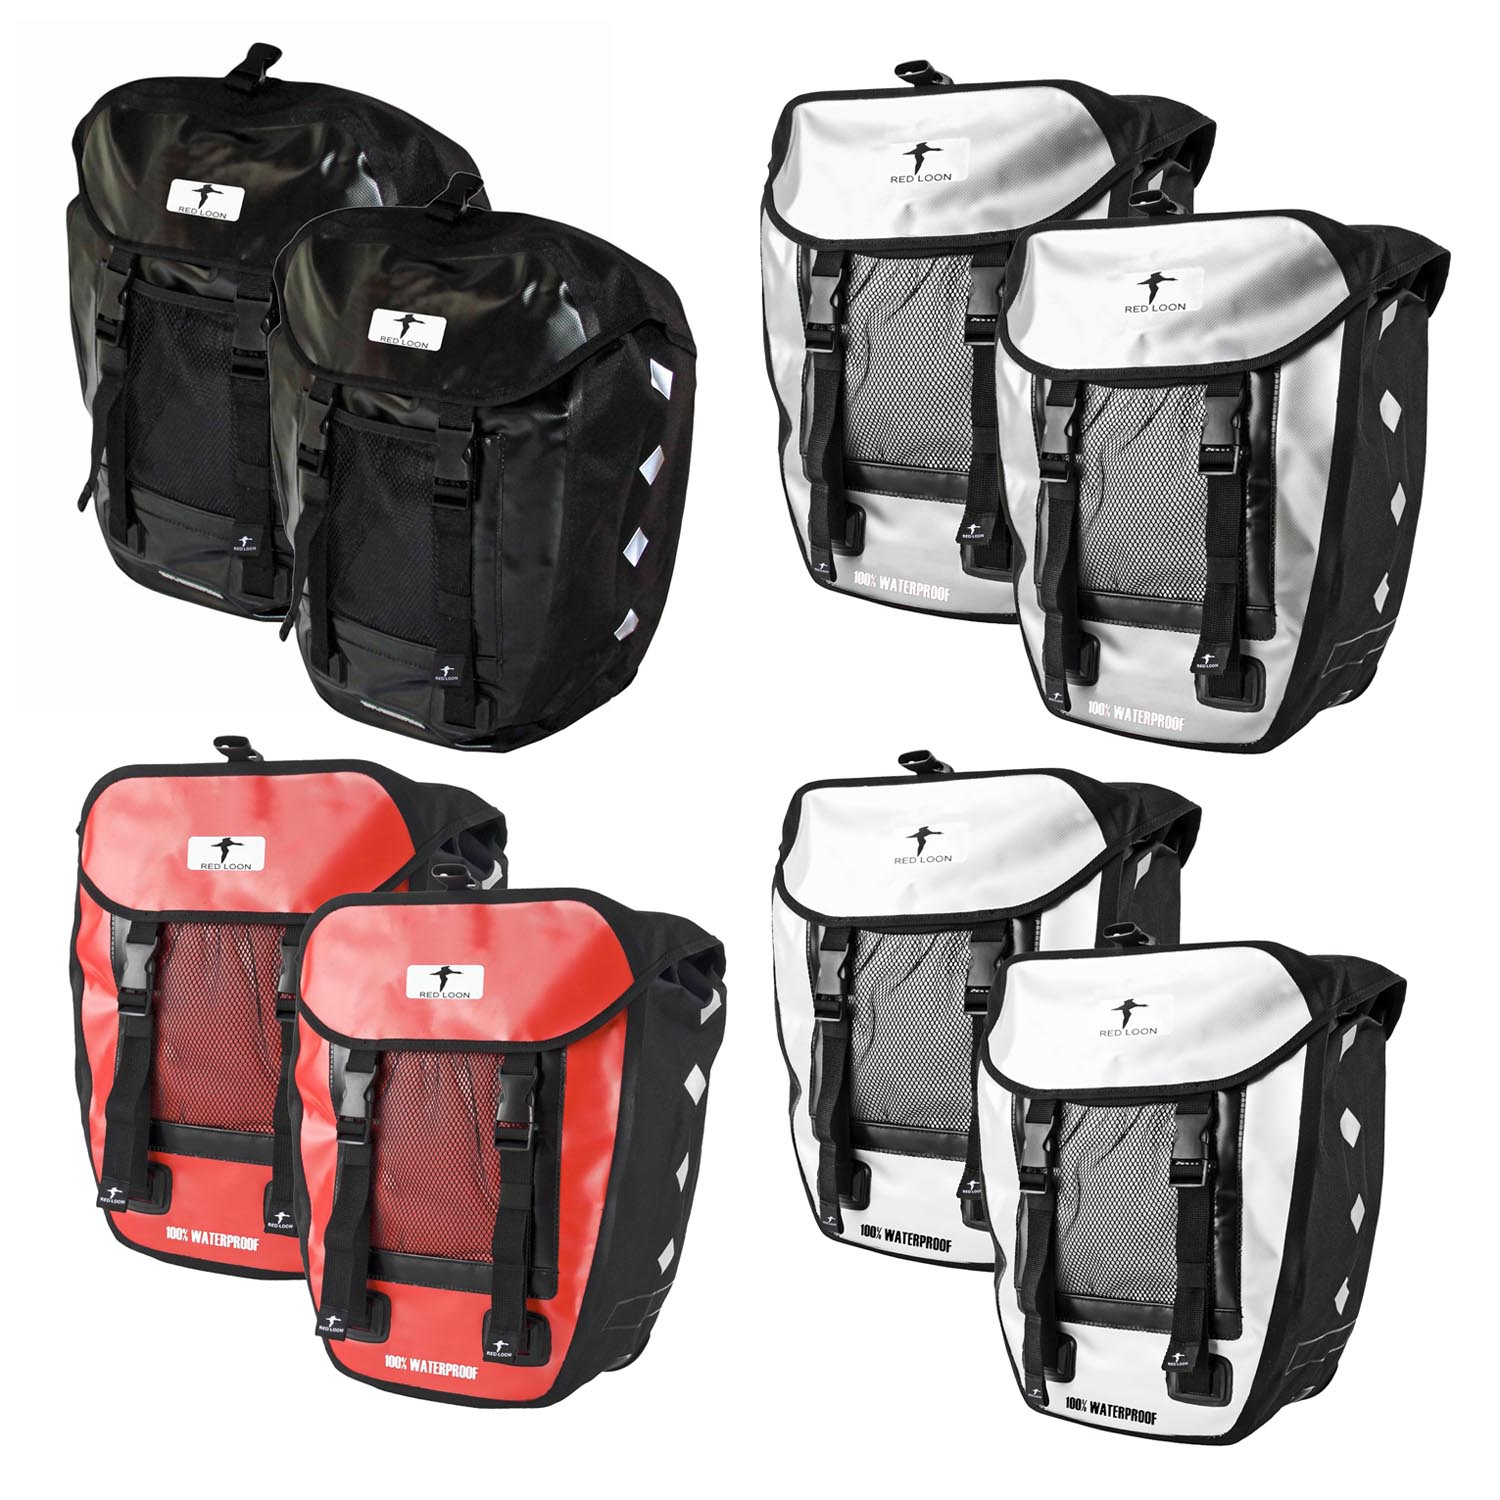 2x red loon pro packtasche fahrradtasche. Black Bedroom Furniture Sets. Home Design Ideas